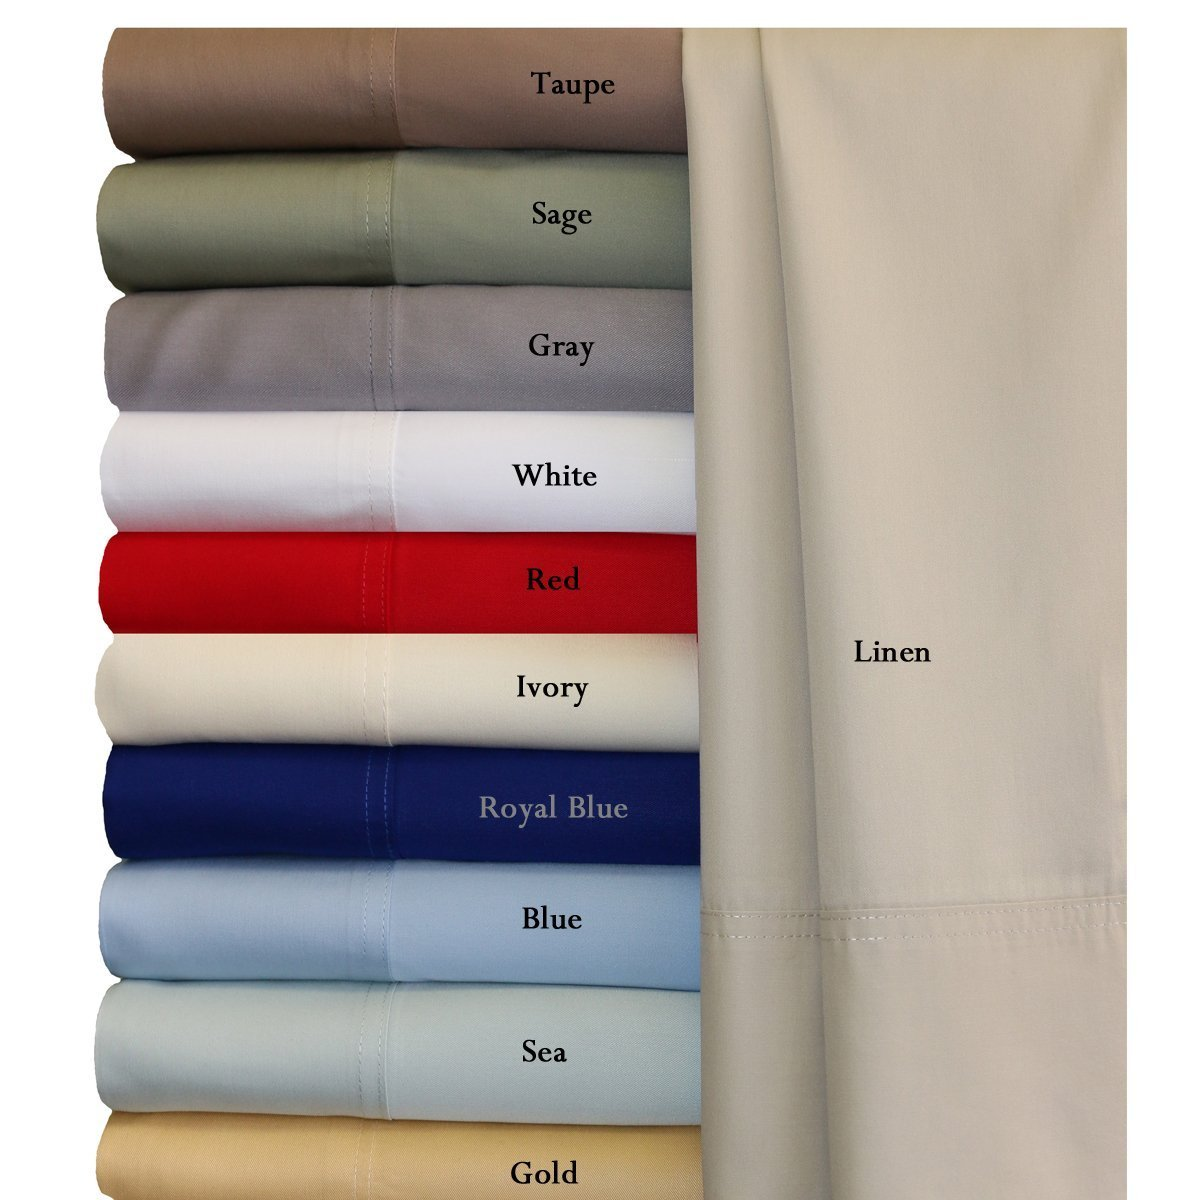 100% Bamboo Bed Sheet Set - Split-King, Solid Grey - Super Soft & Cool, Bamboo Viscose, 5PC Sheets